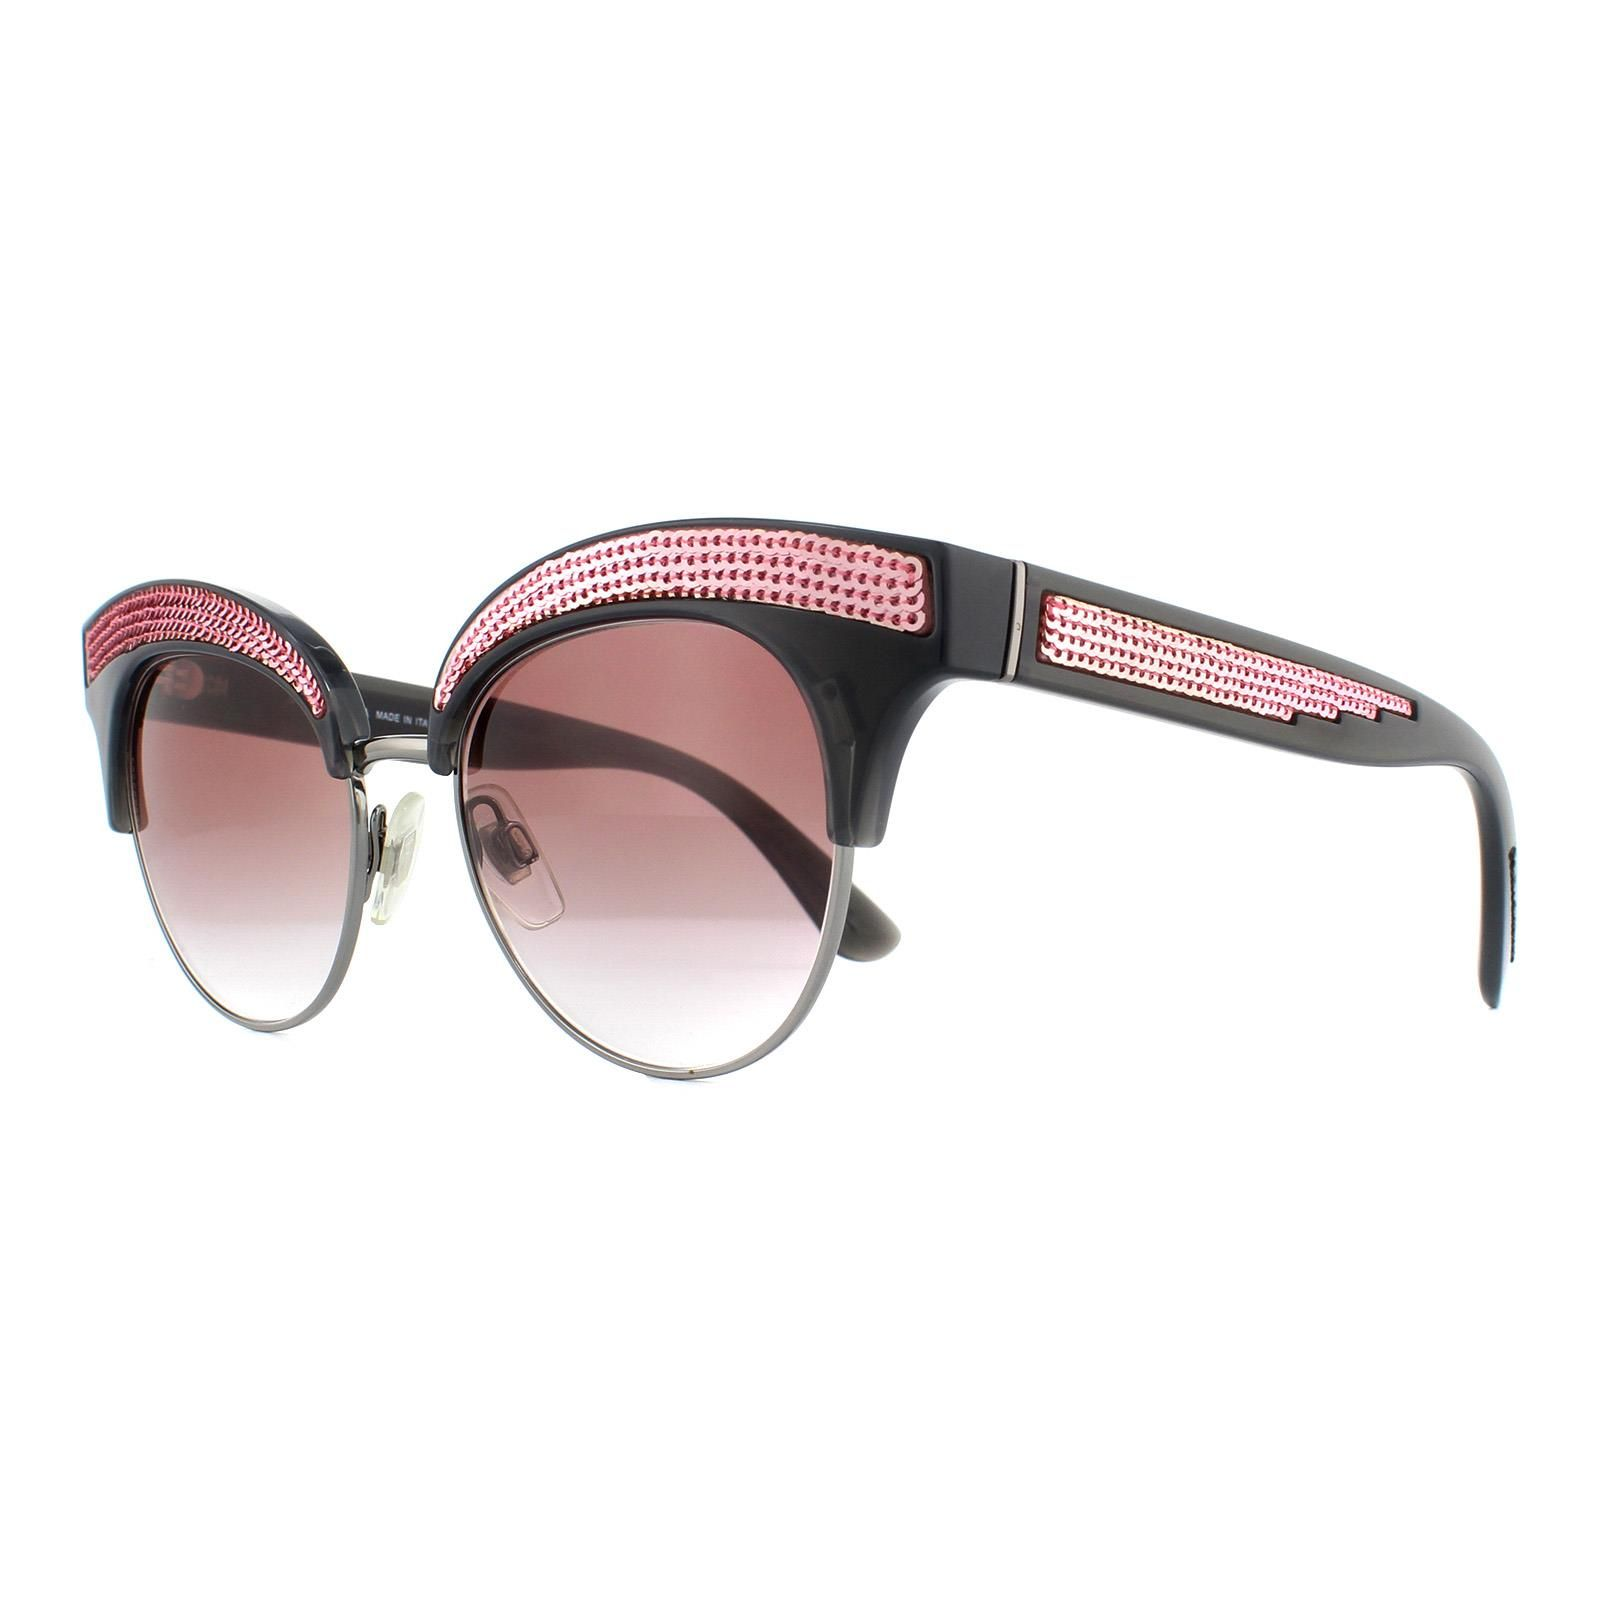 Dolce & Gabbana Sunglasses 6109 31238D Grey and Pink Pink Gradient